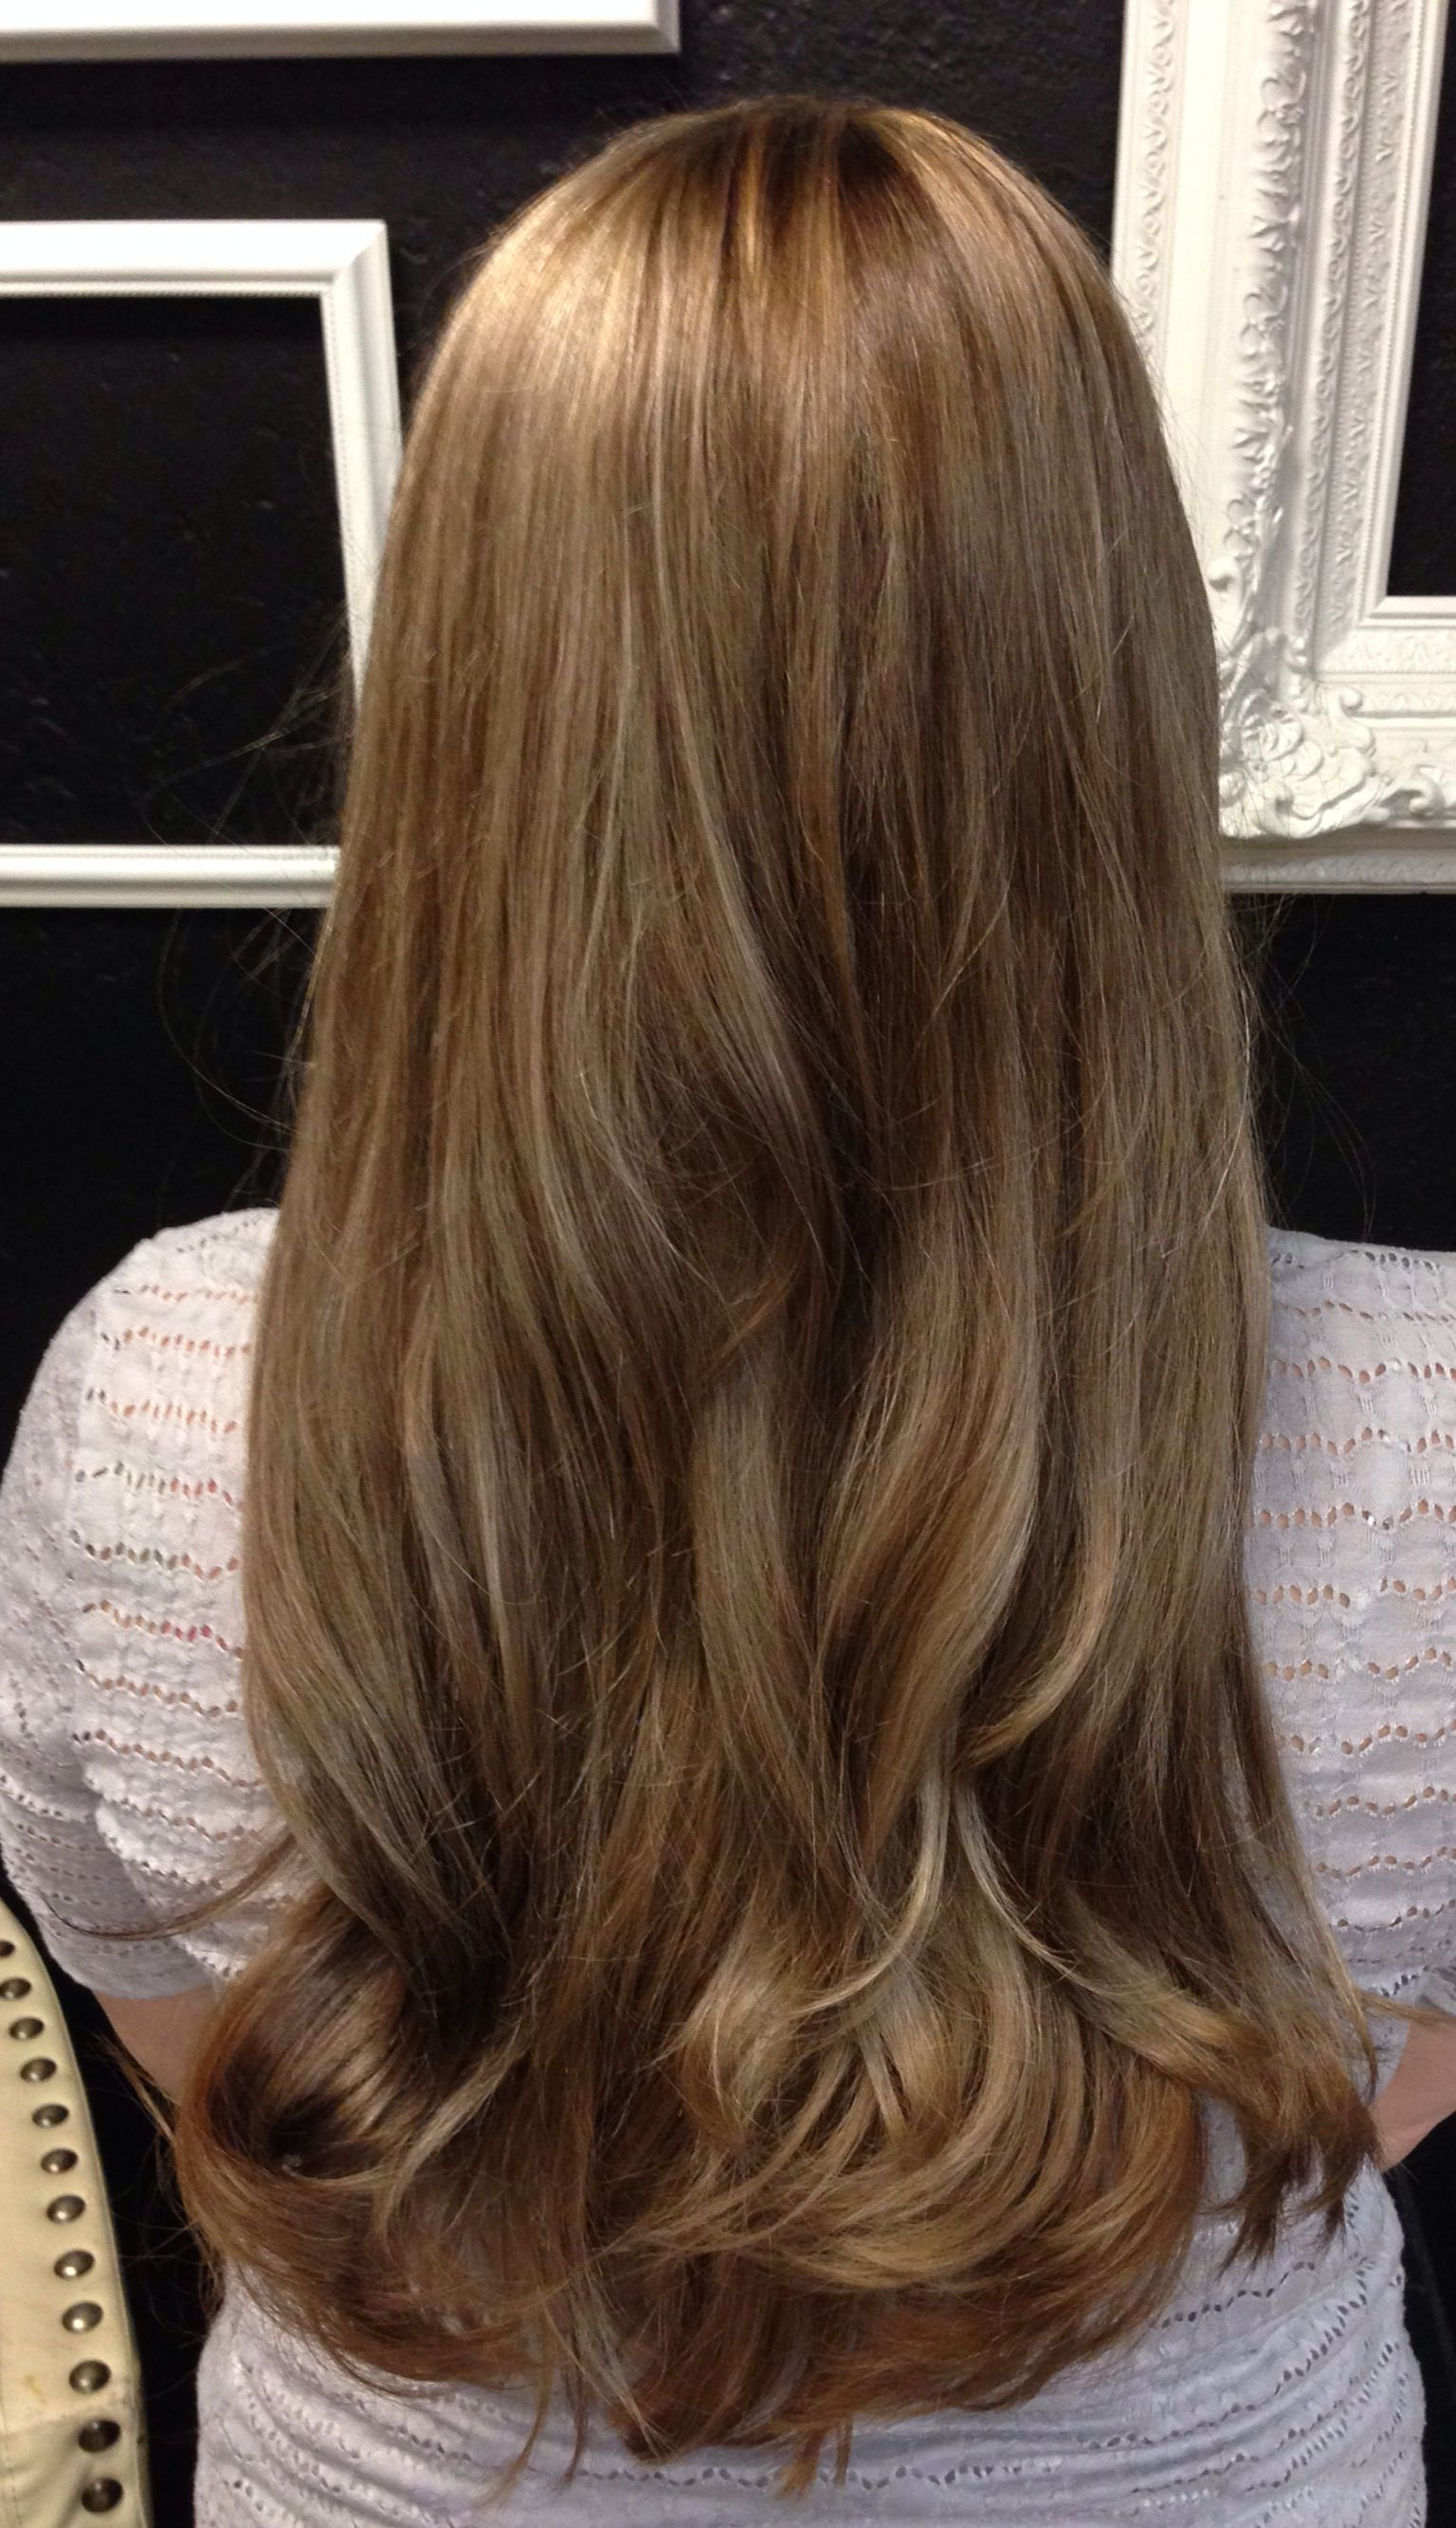 Current Medium Brown Tones Hairstyles With Subtle Highlights In Medium Brown With Beige/golden Tones & Subtle Blonde Highlights (View 1 of 20)